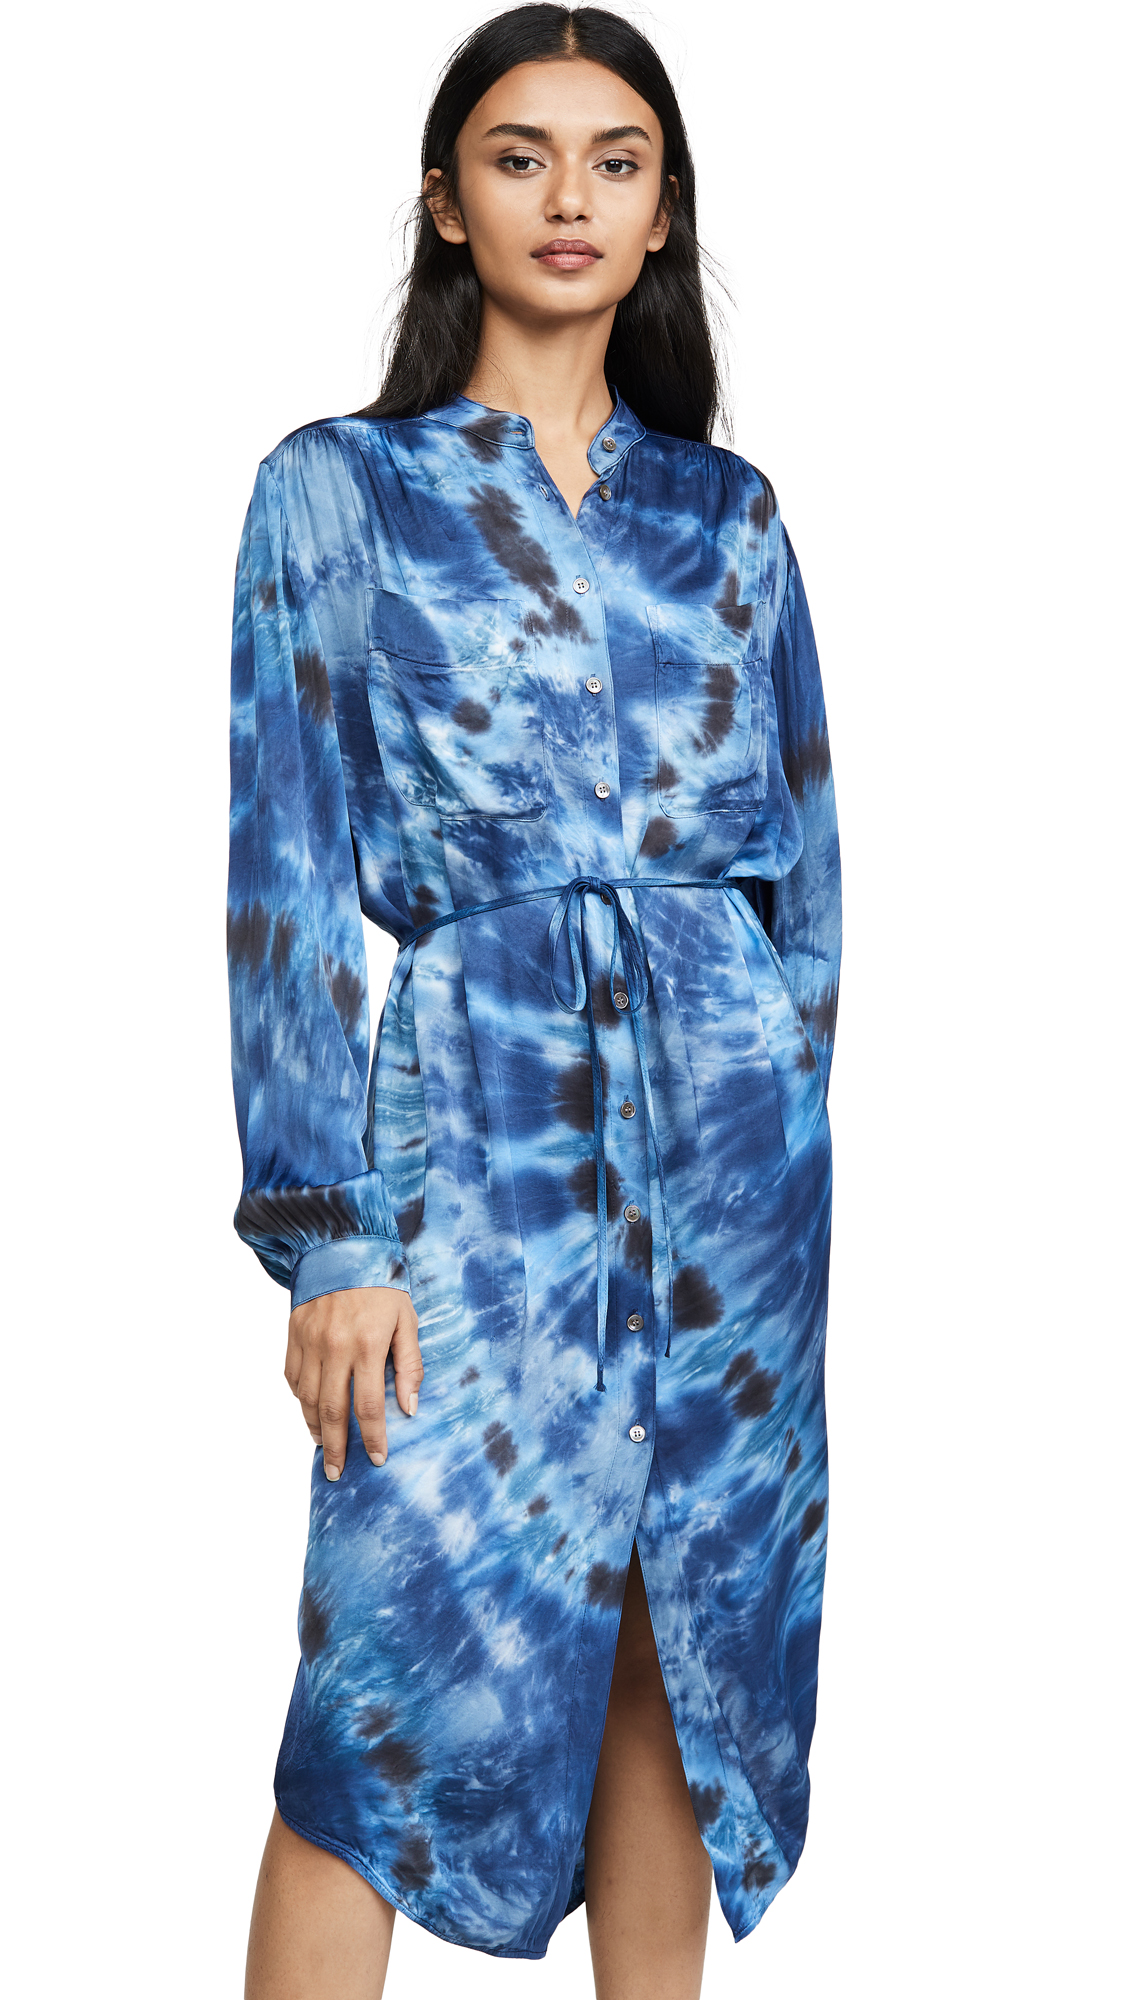 Buy Raquel Allegra Cargo Shirt Dress online beautiful Raquel Allegra Clothing, Dresses